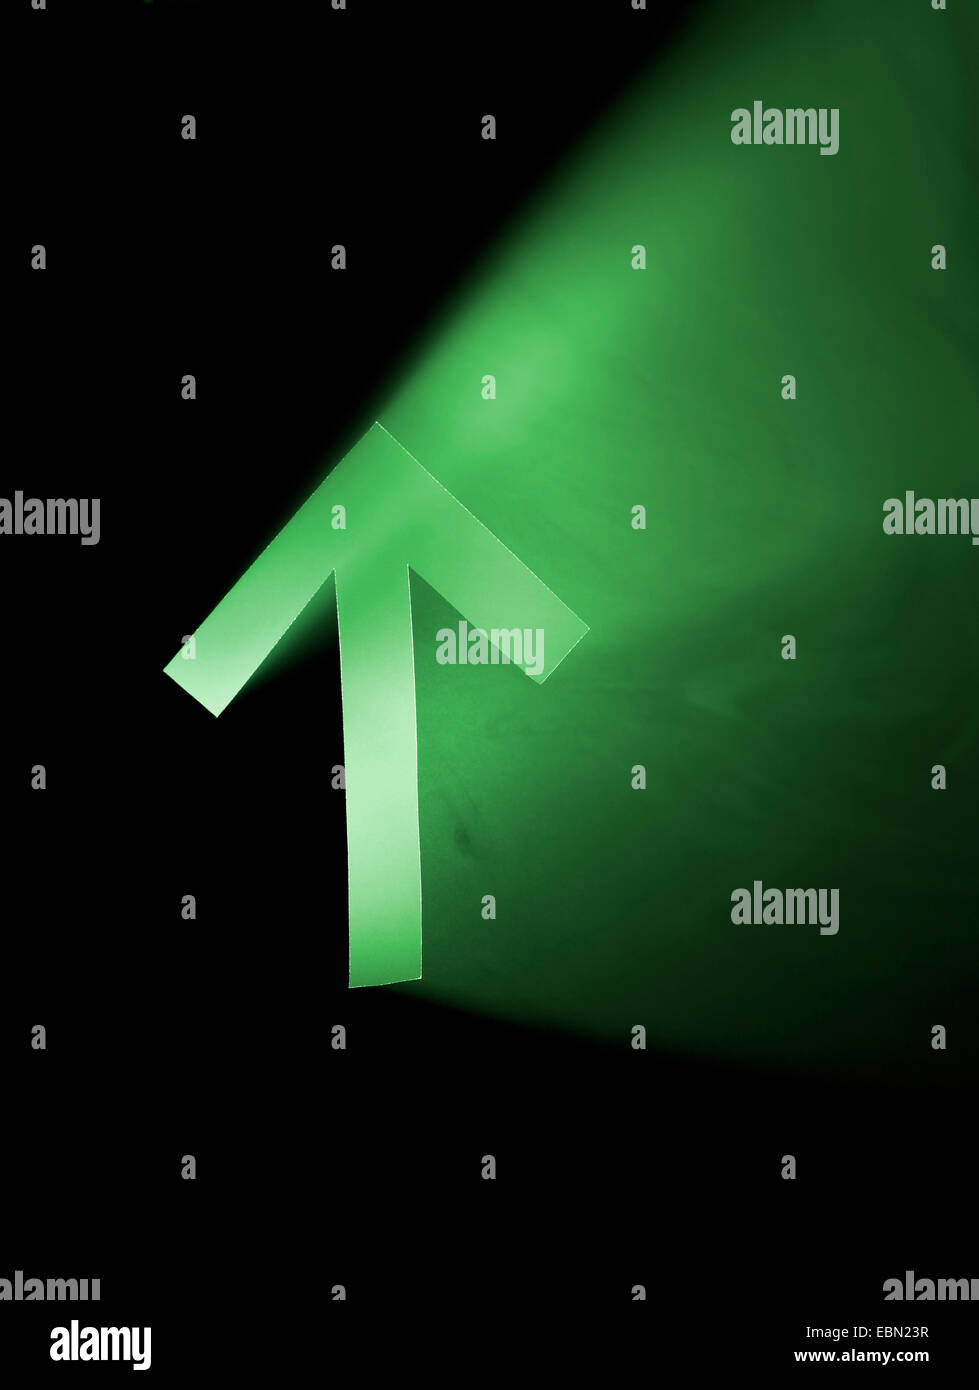 Green arrow pointing up. Hole cut in cardboard, smoke machine and spotlight. The image may appear noisy, but that - Stock Image